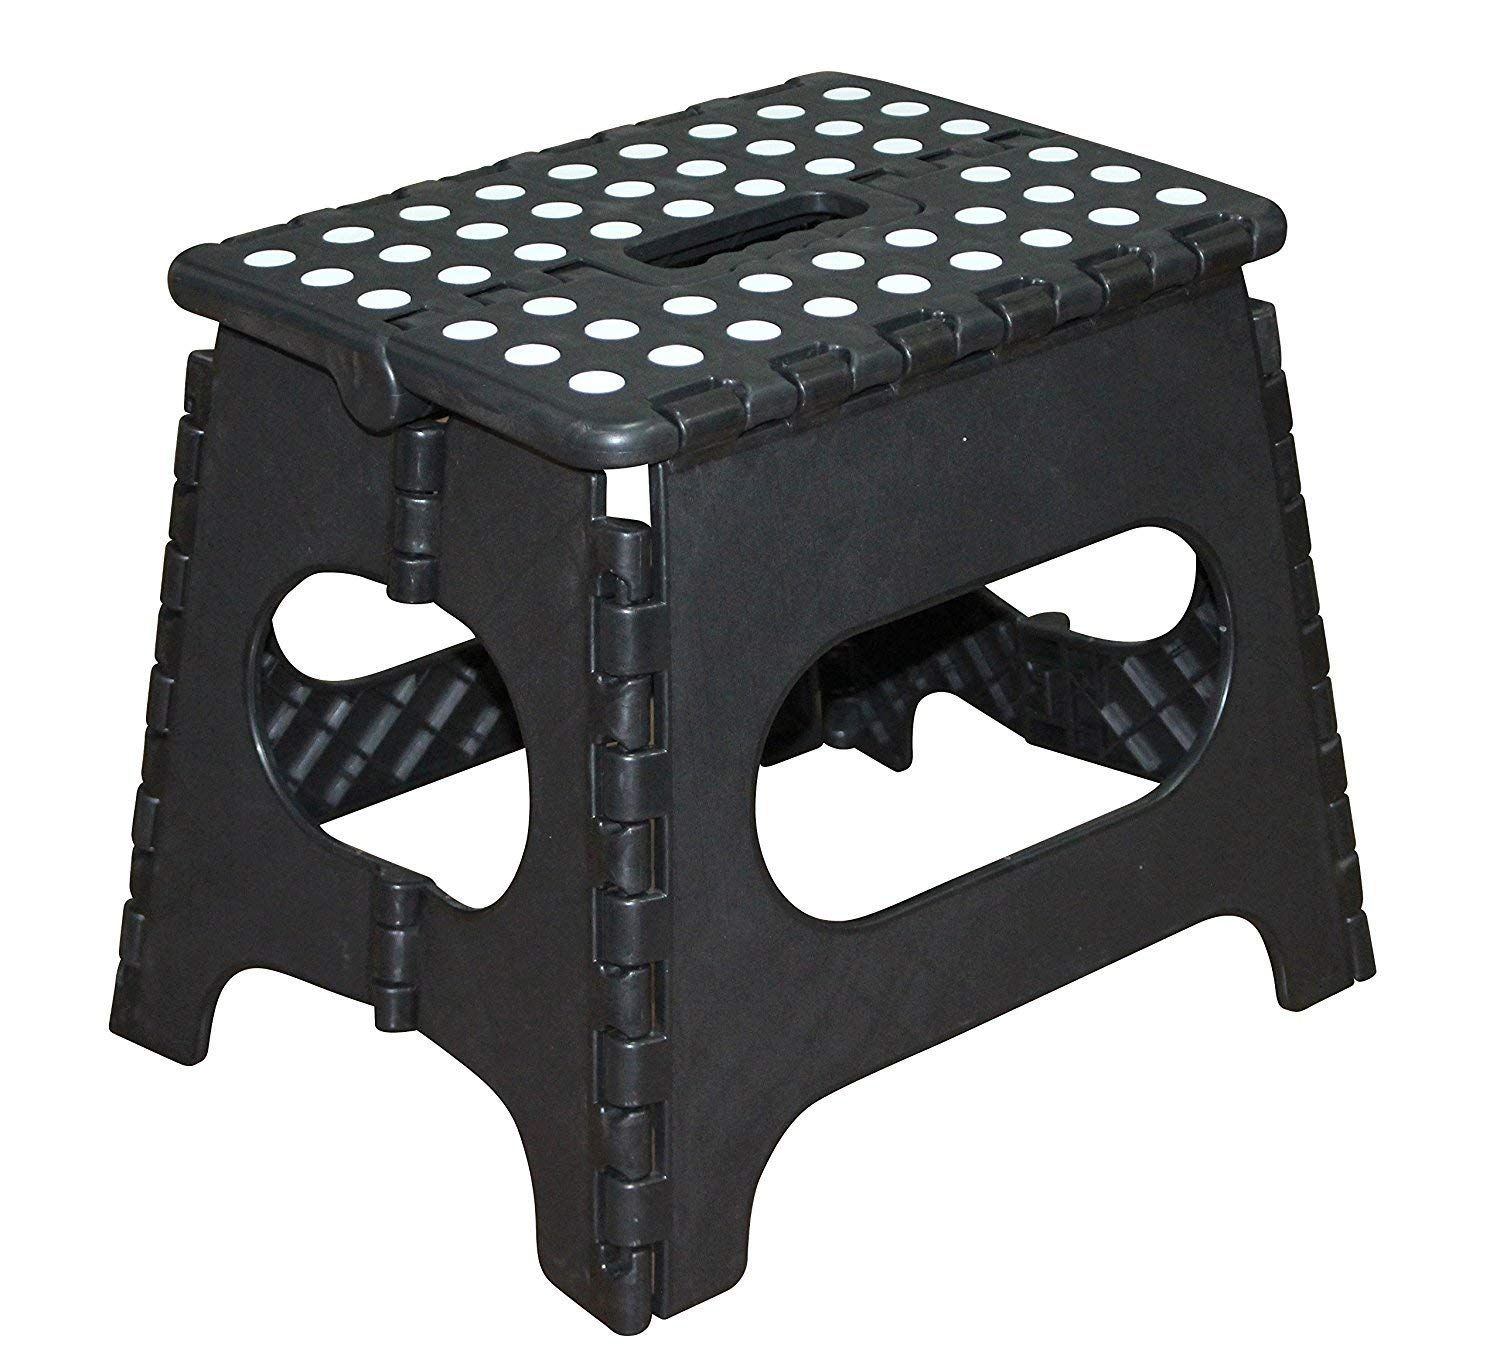 Folding Stool for Adults & Kids, Kitchen Stools, Garden Stool